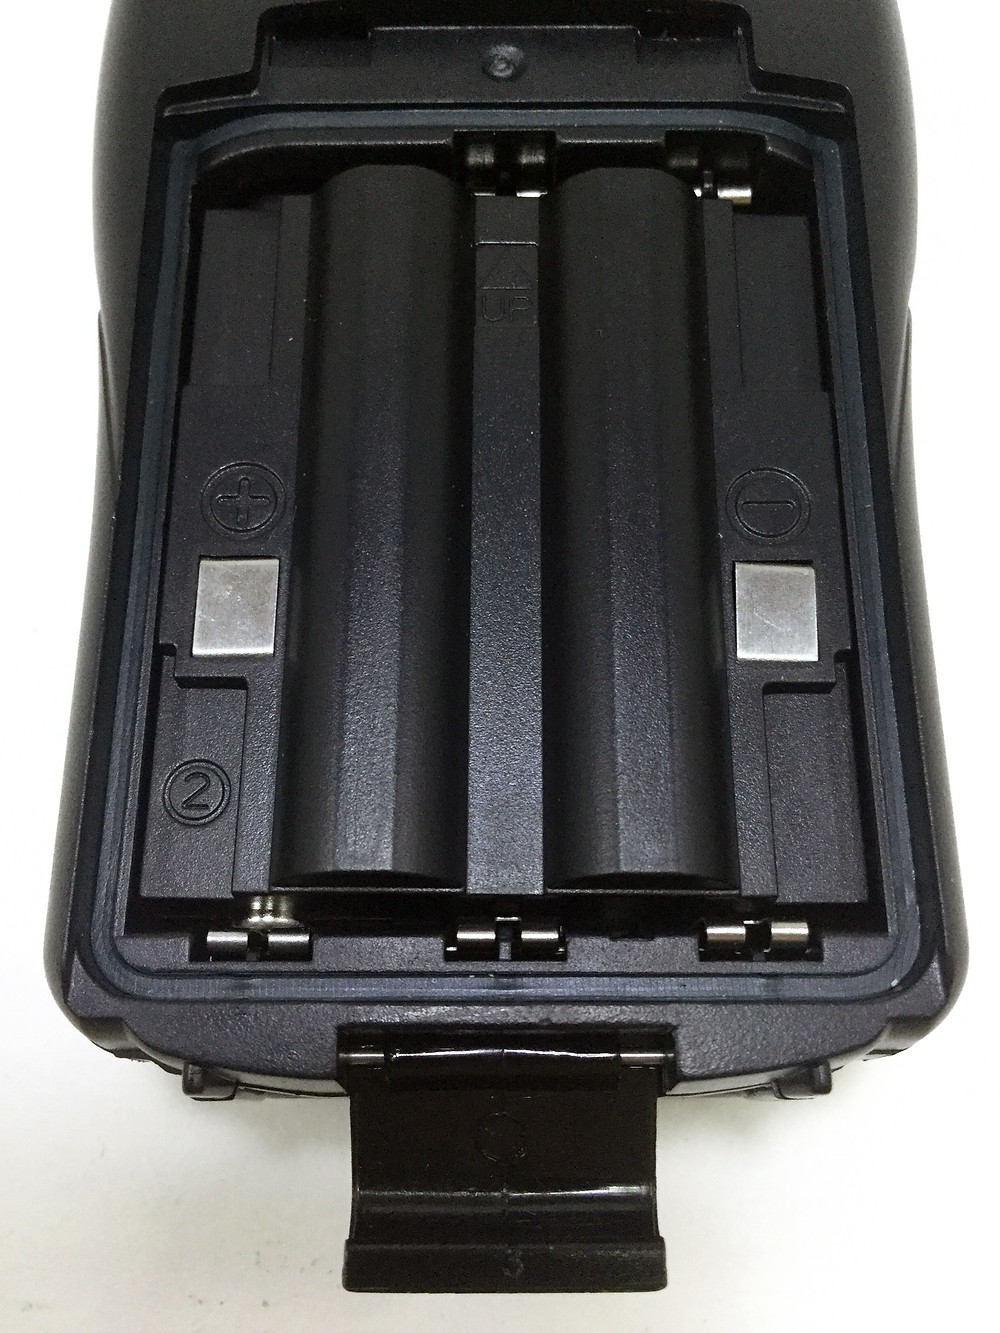 Midland GXT 1000 battery compartment